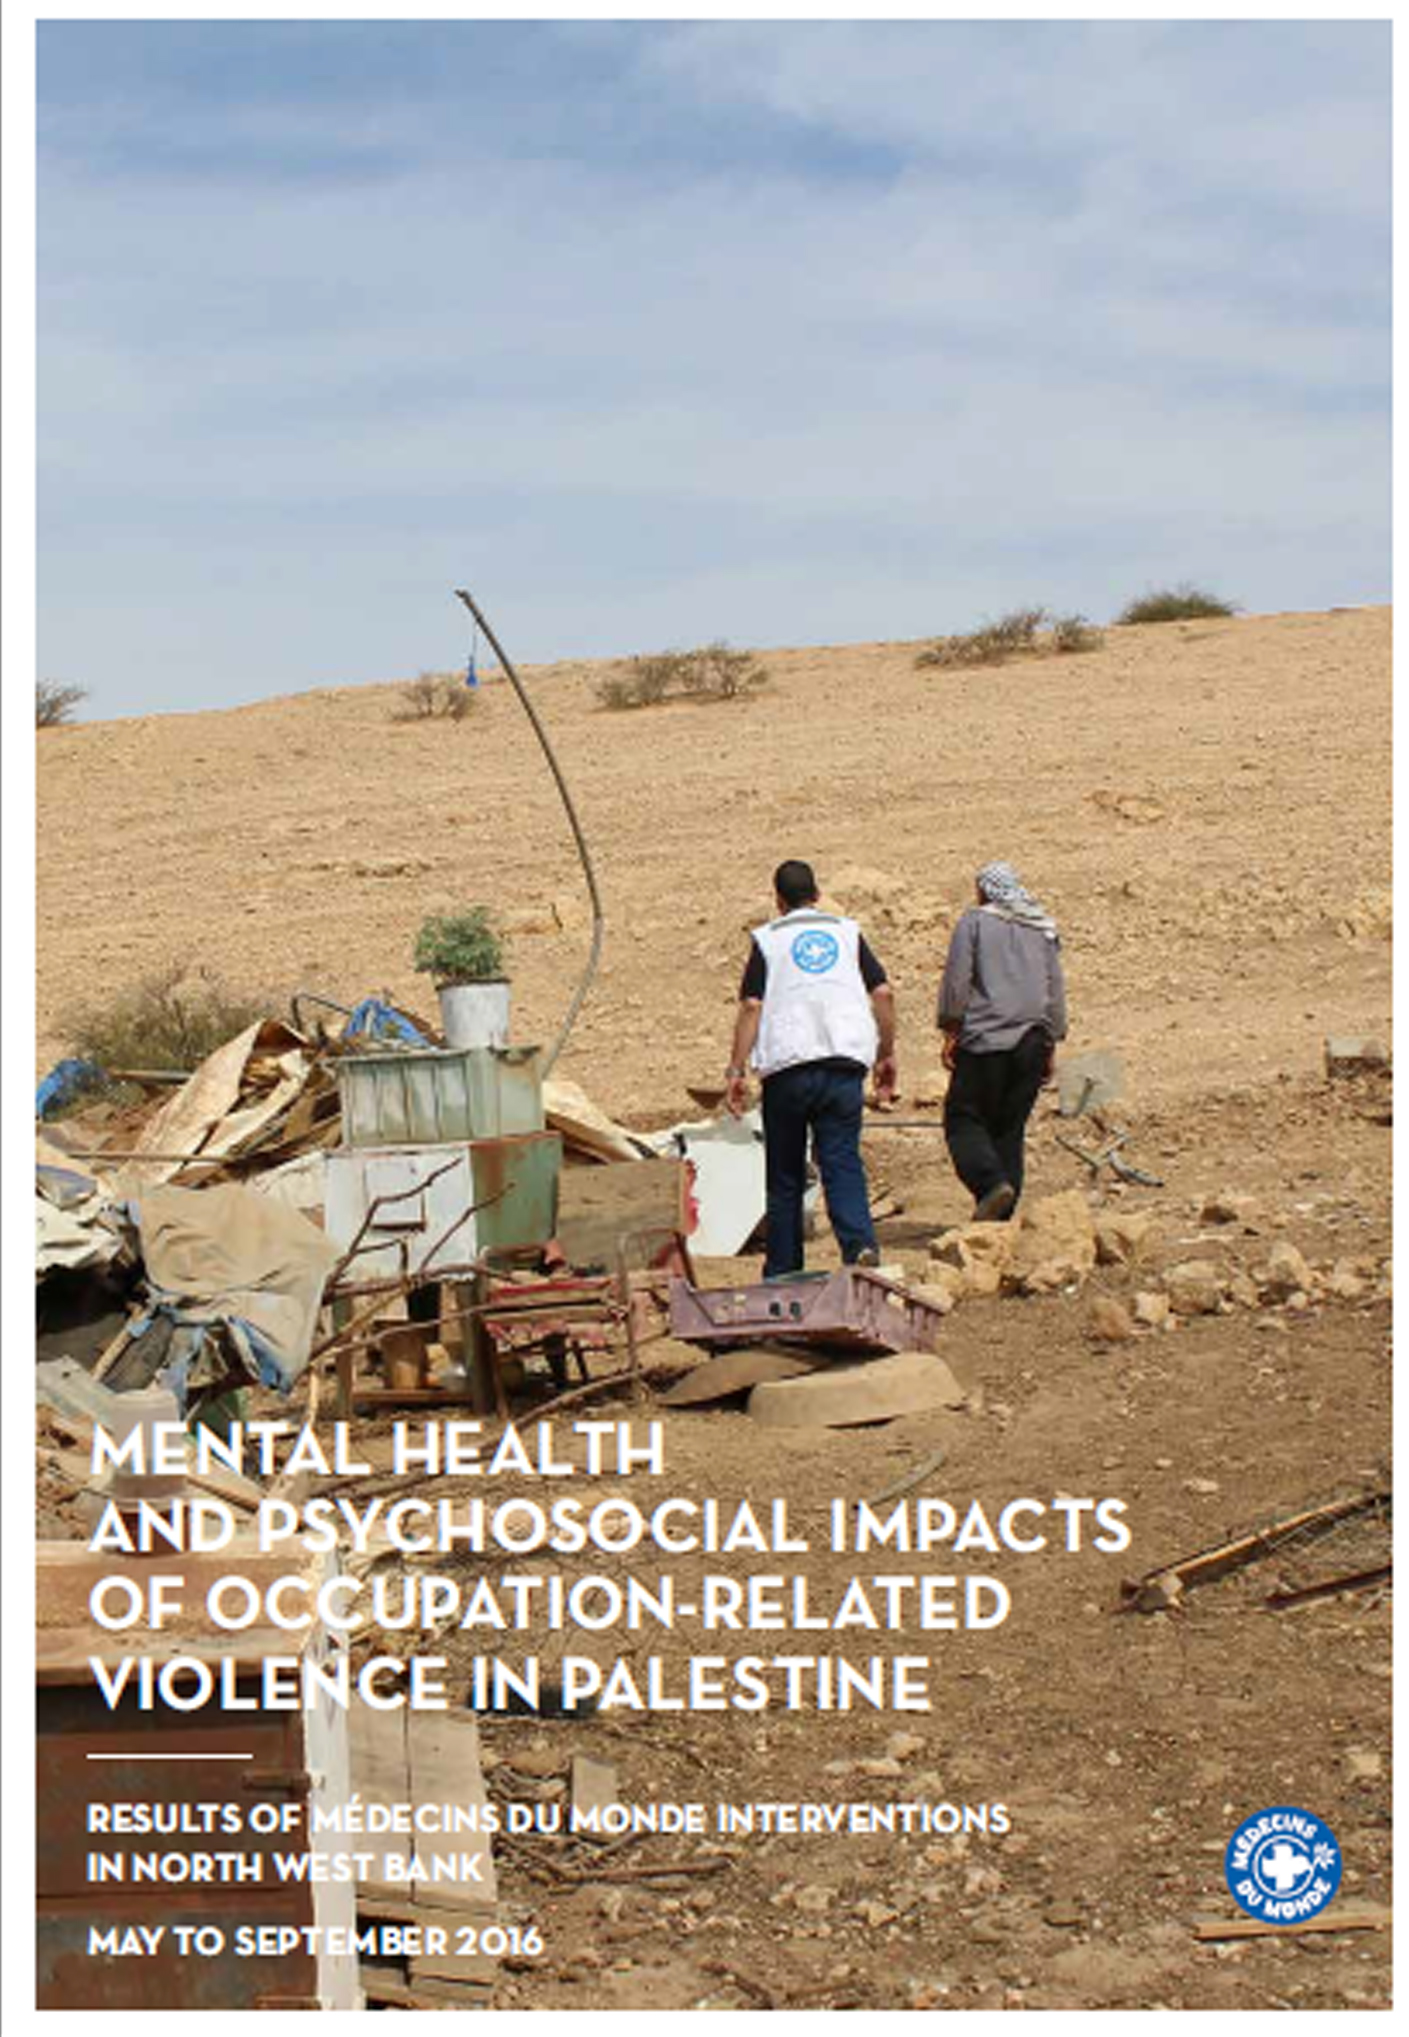 Mental health and psychosocial impacts of occupation-related violence in Palestine